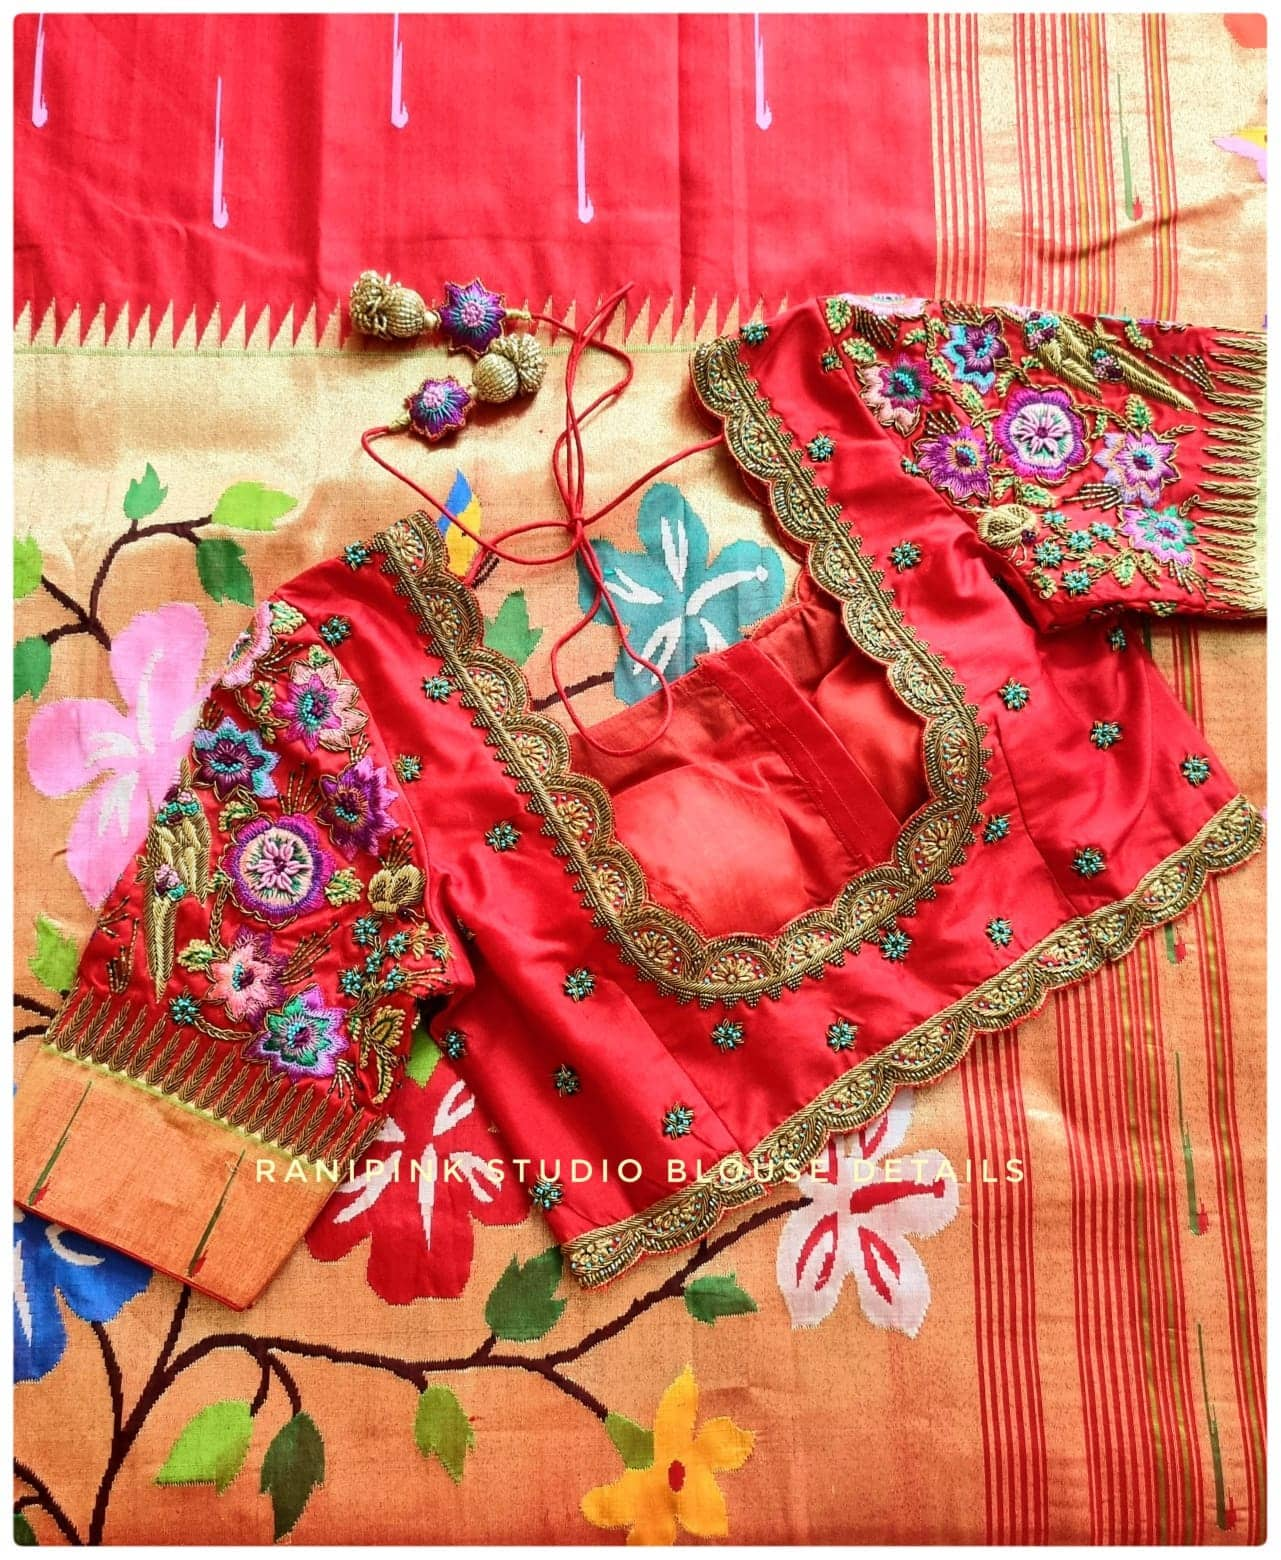 New embroidery blouse paired with a beautiful Red paithani saree. Stunning red color bridal blouse with floral and parrots hand embroidery thread maggam work.  . . For appointments call or whatapp at 8884620620. 2021-10-21